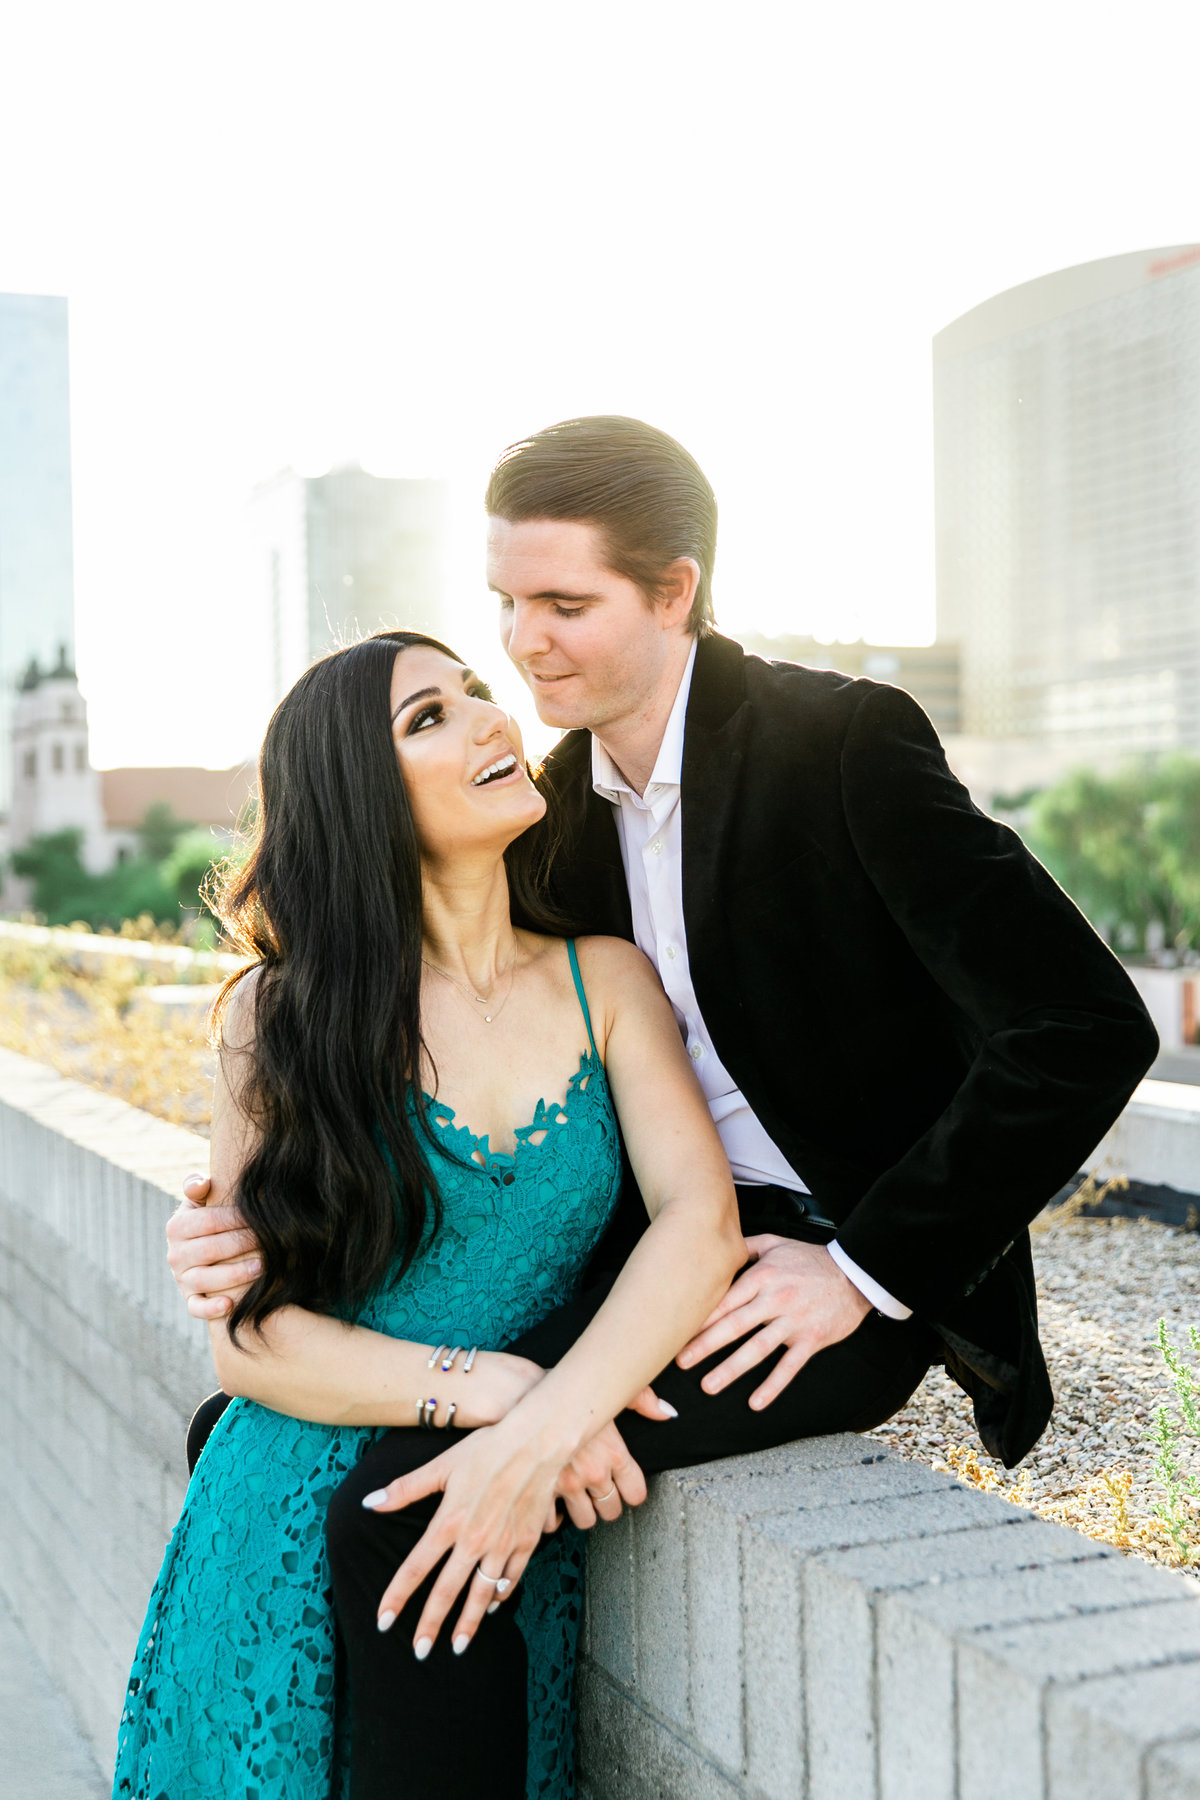 Karlie Colleen Photography - Arizona Engagement City Shoot - Kim & Tim-218